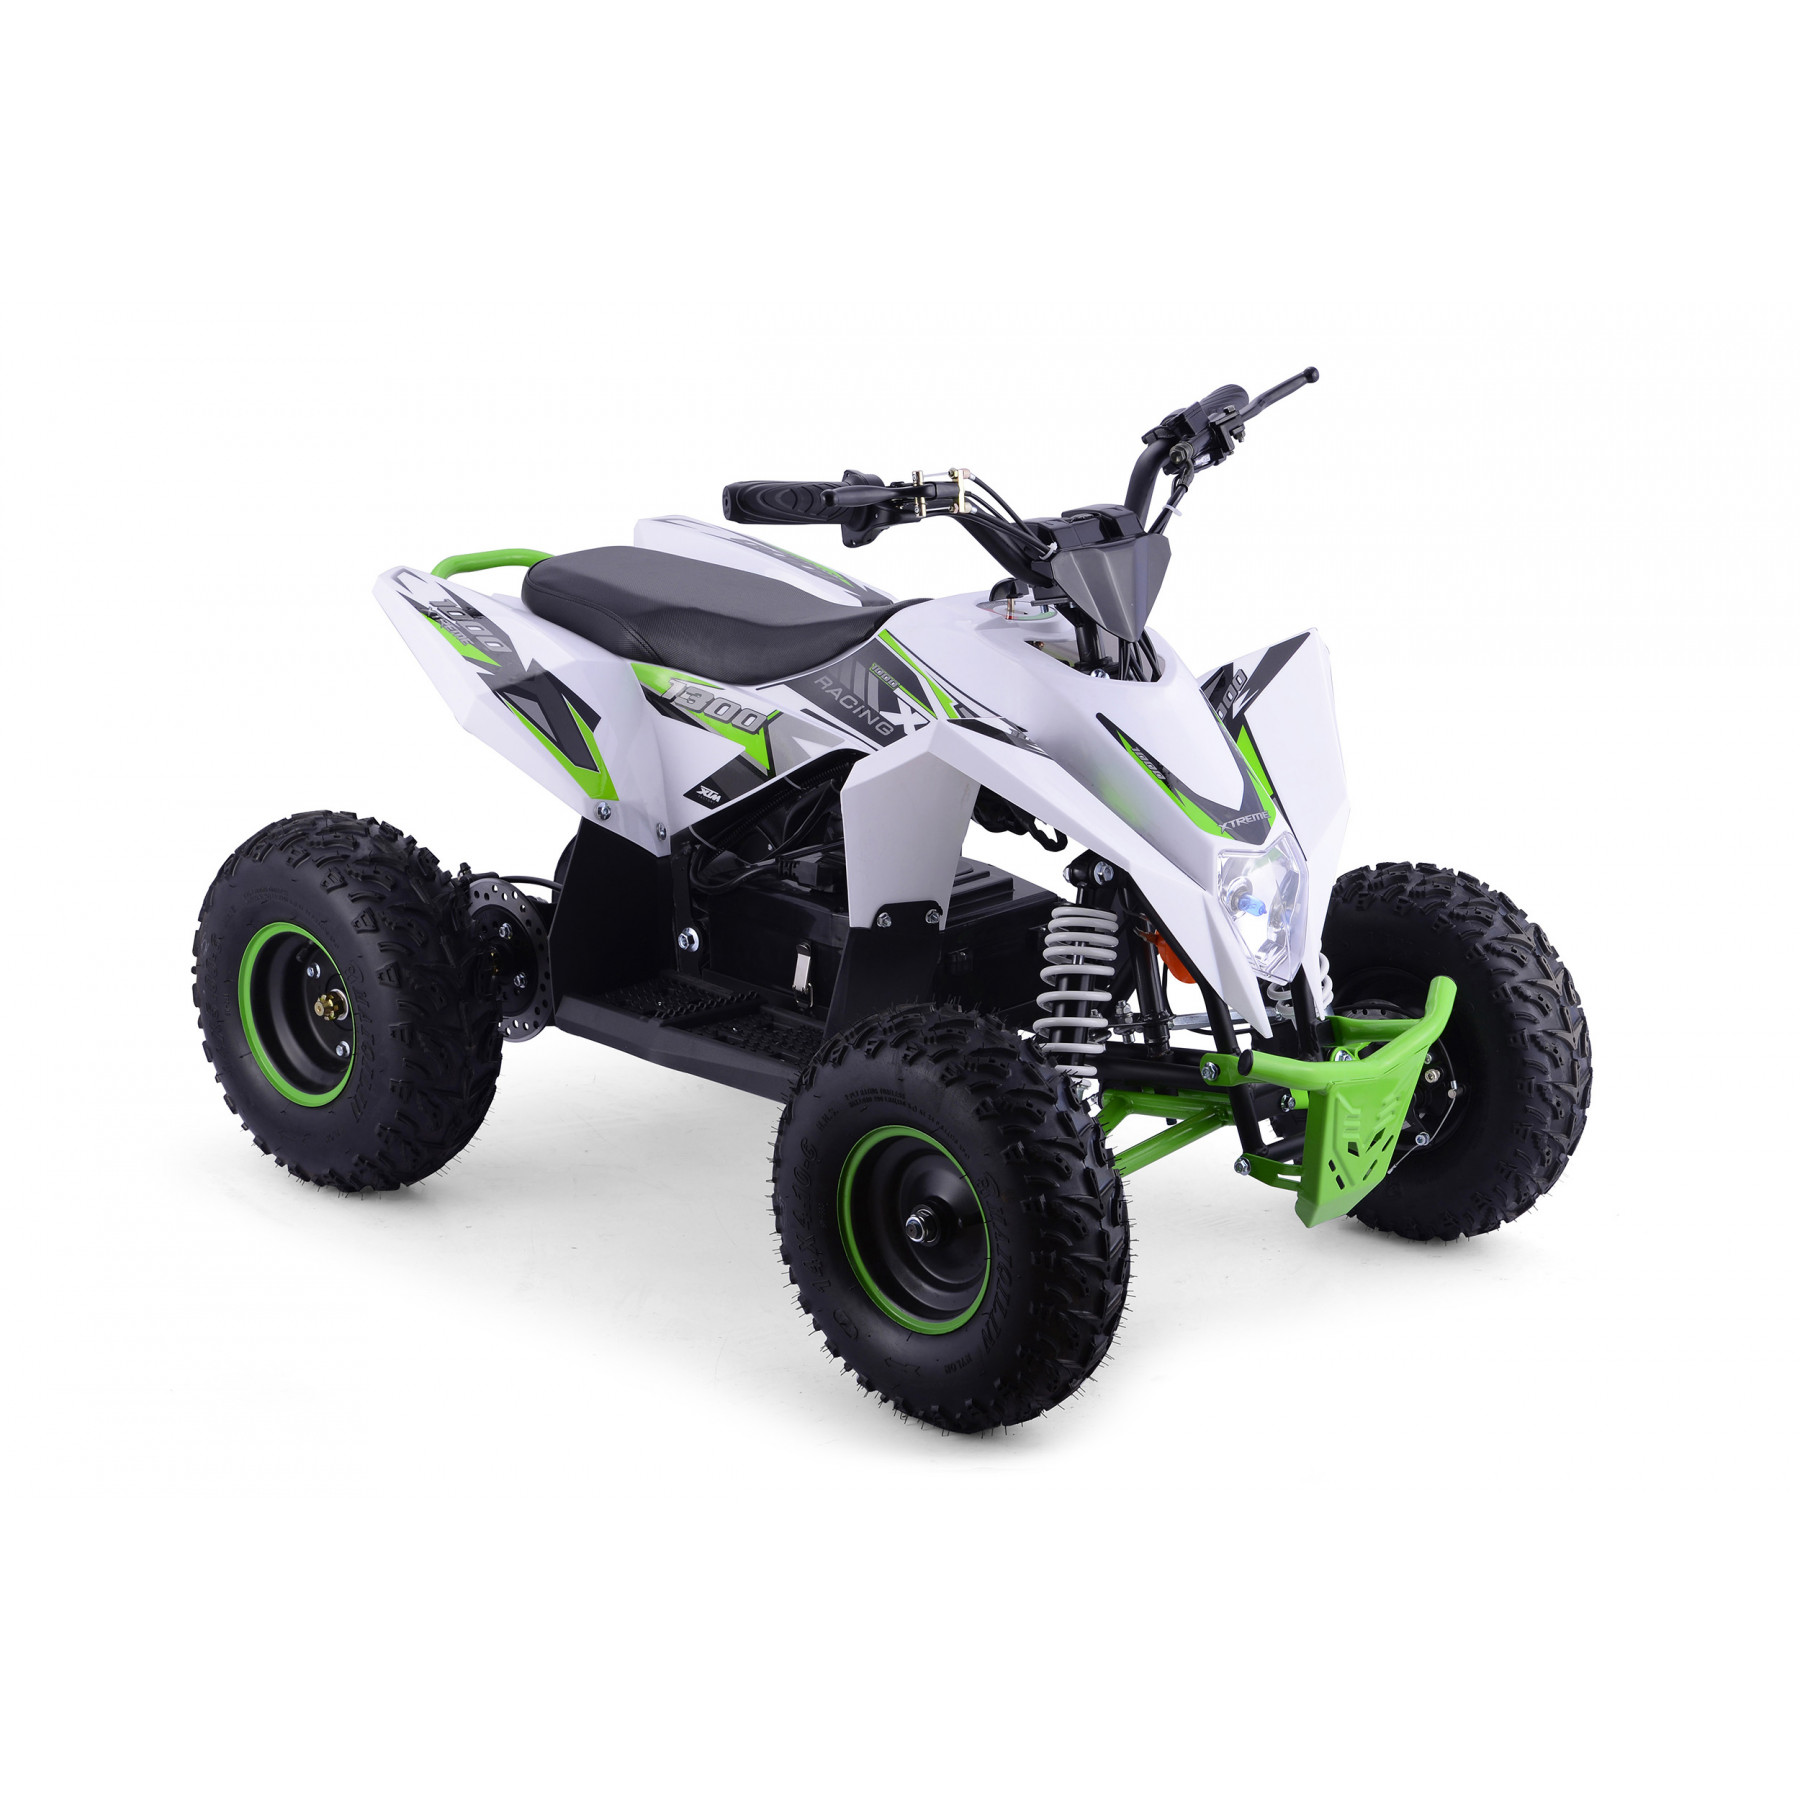 XTM RACING 48v 1300w LITHIUM QUAD BIKE WHITE GREEN